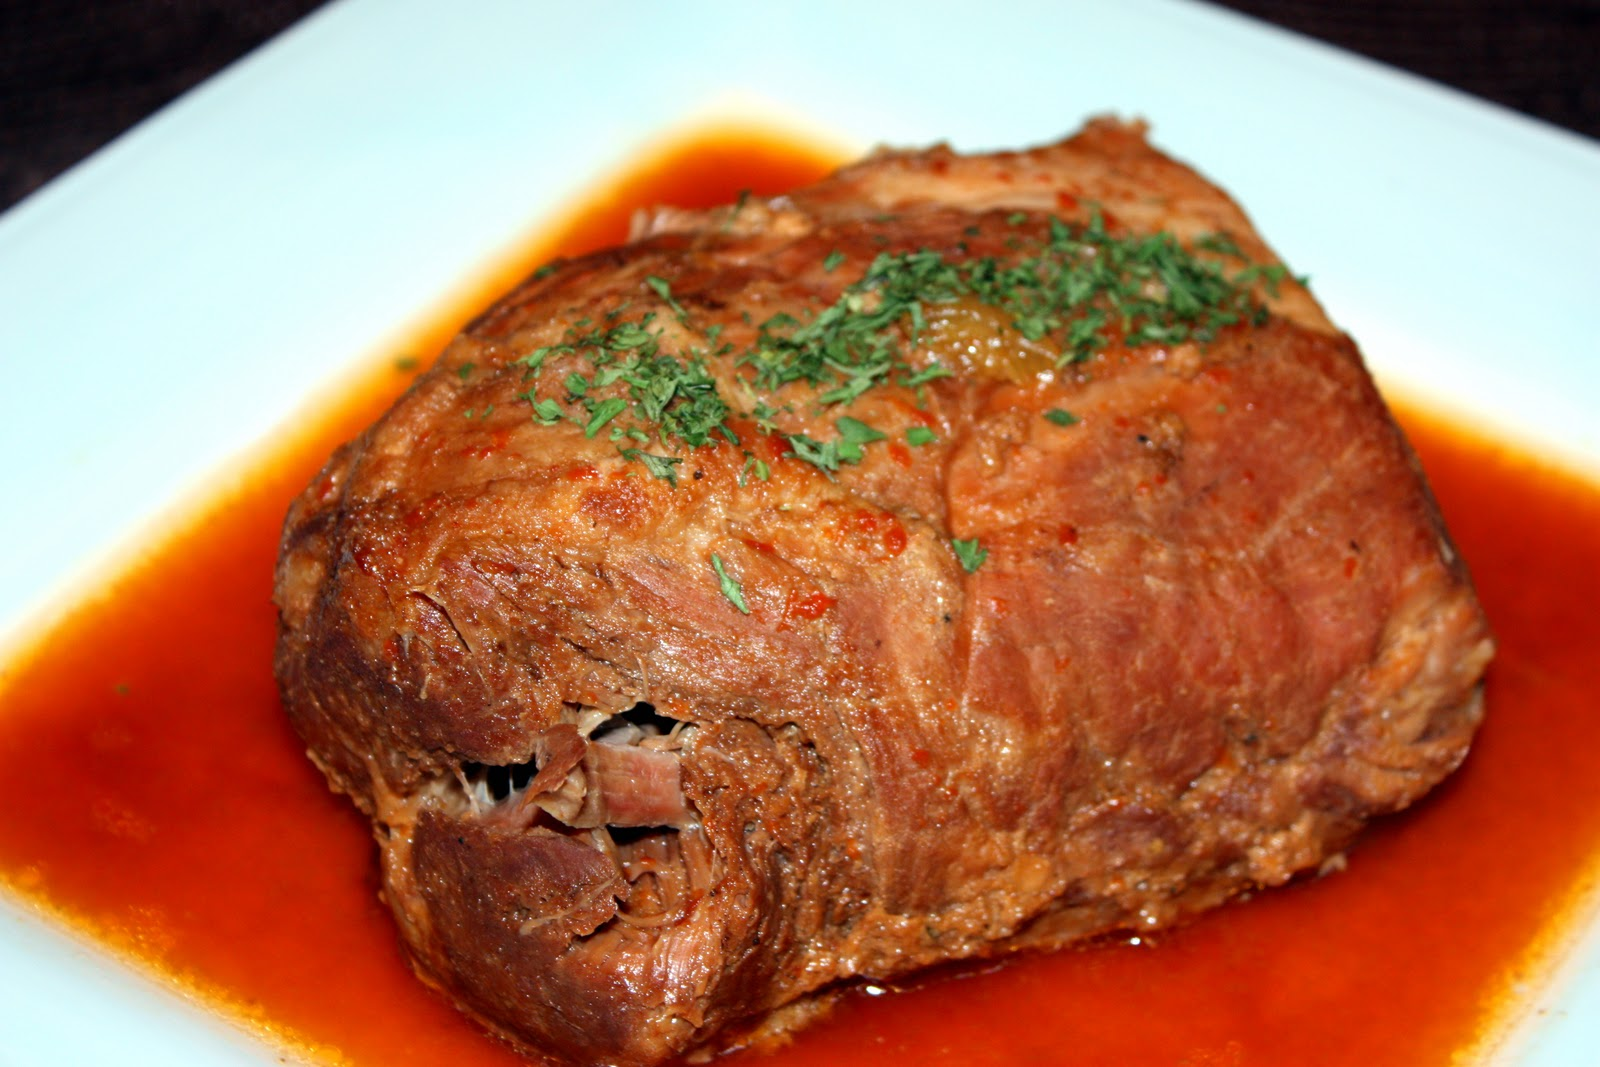 ... My Health: What's for Dinner? (Tangy Slow Cooker Pork Roast